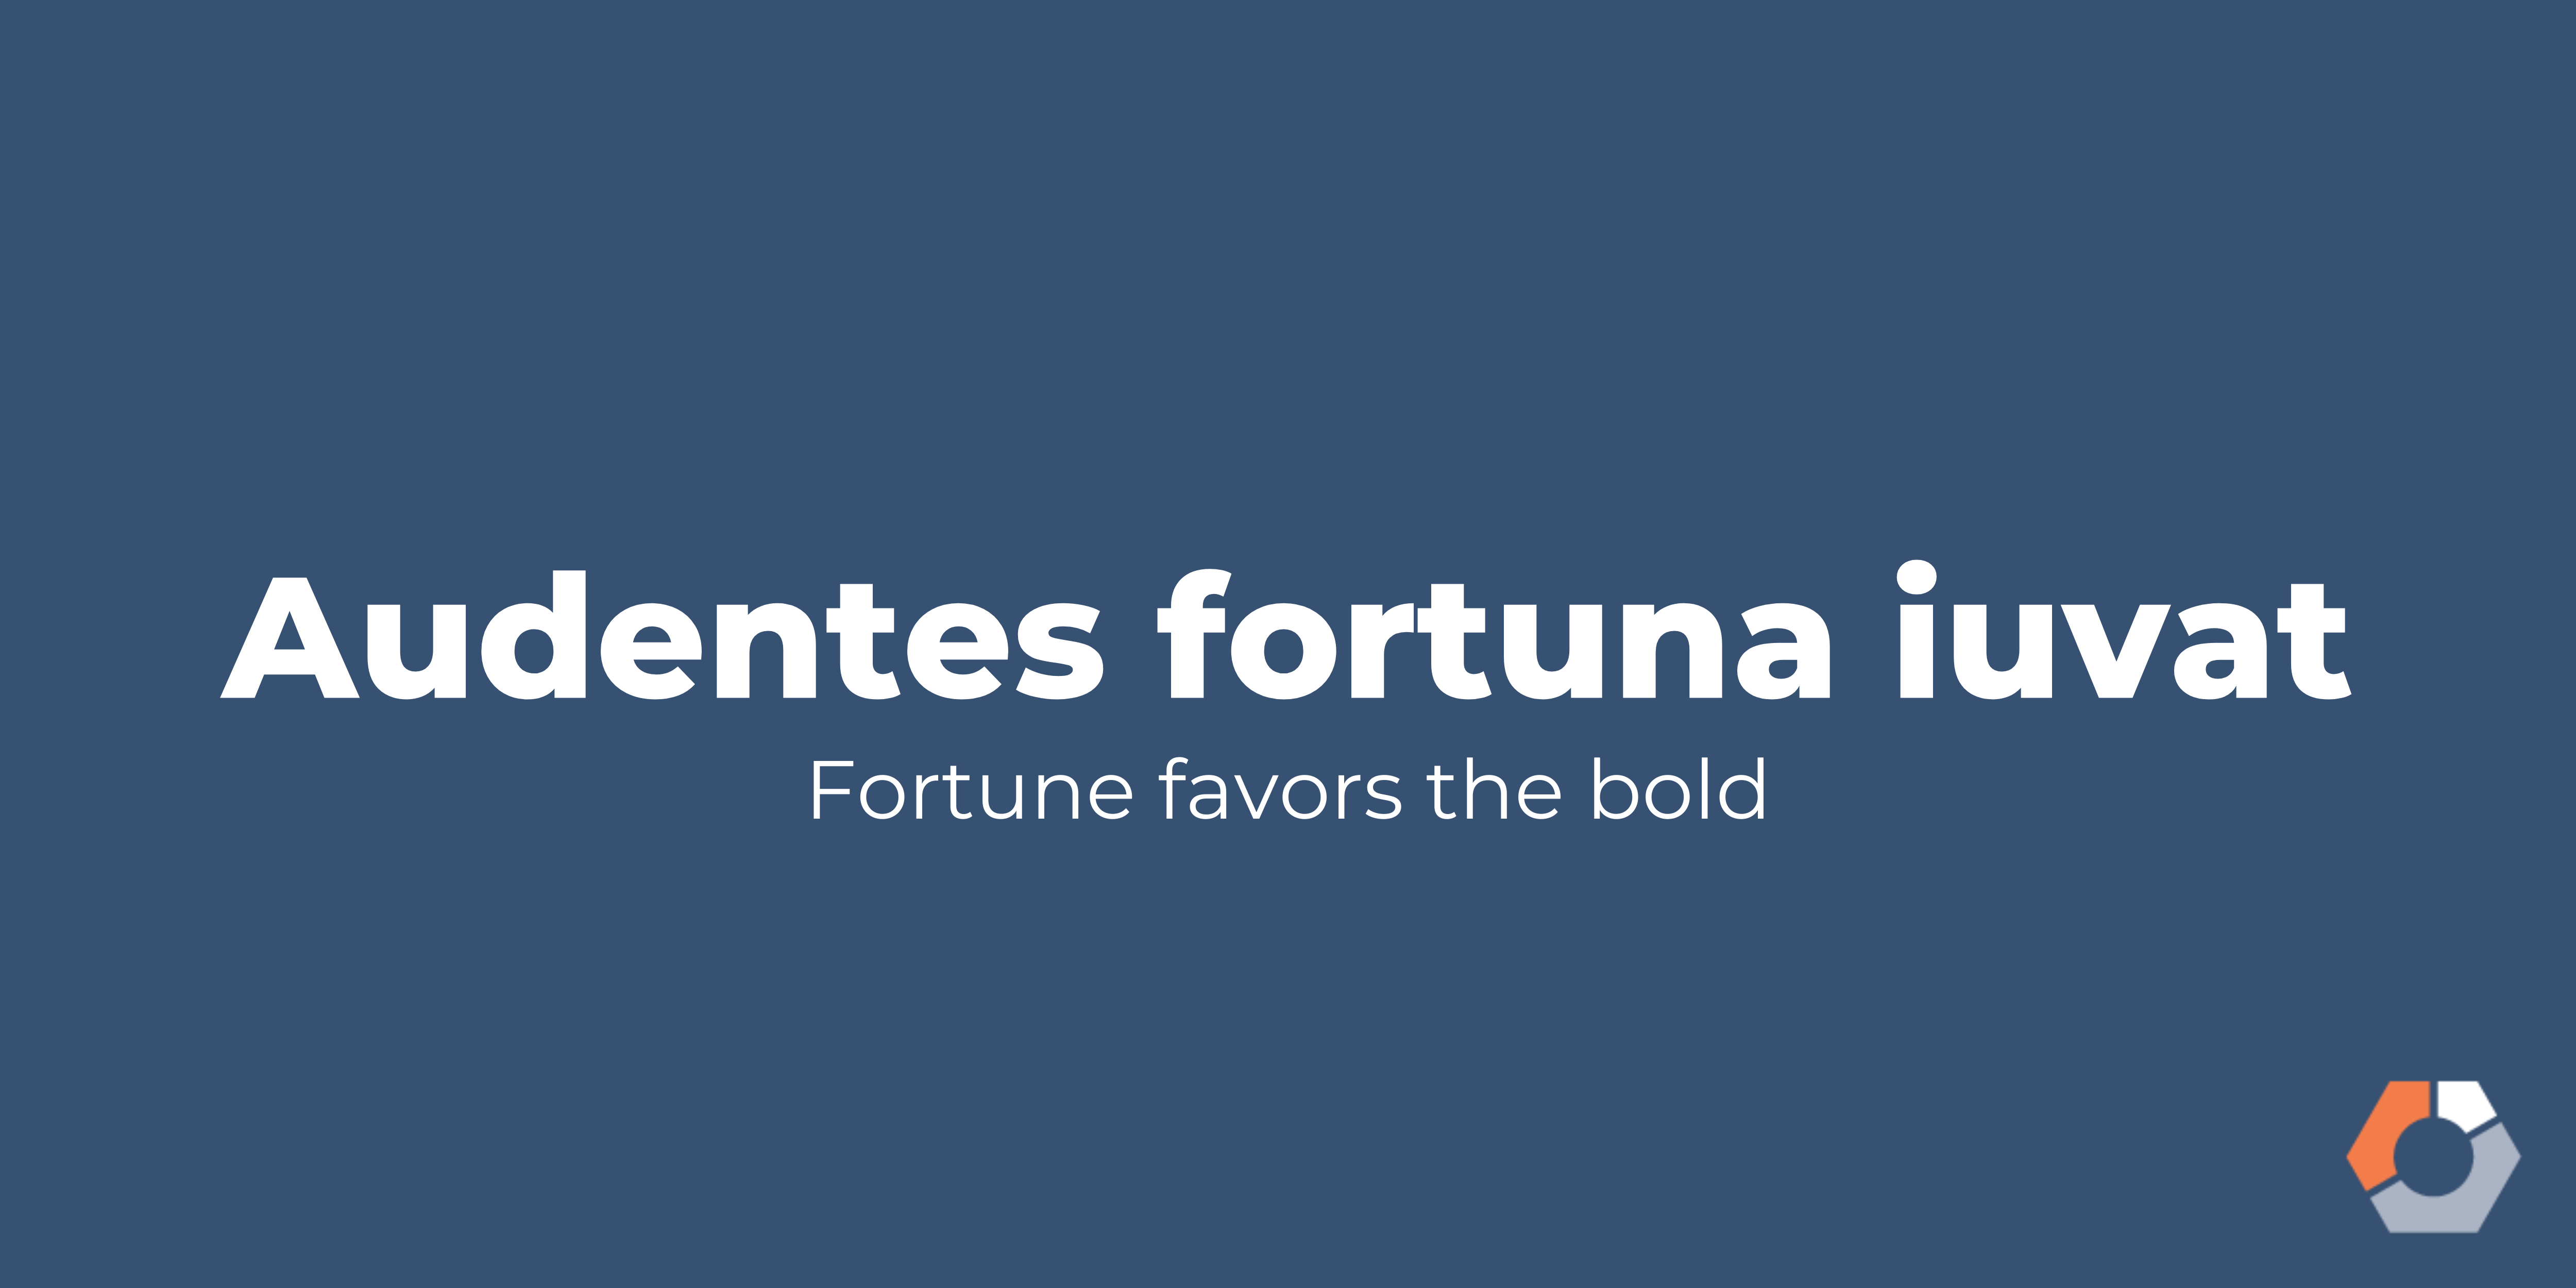 """Audentes fortuna iuvat"" translates to ""fortune favors the bold."""